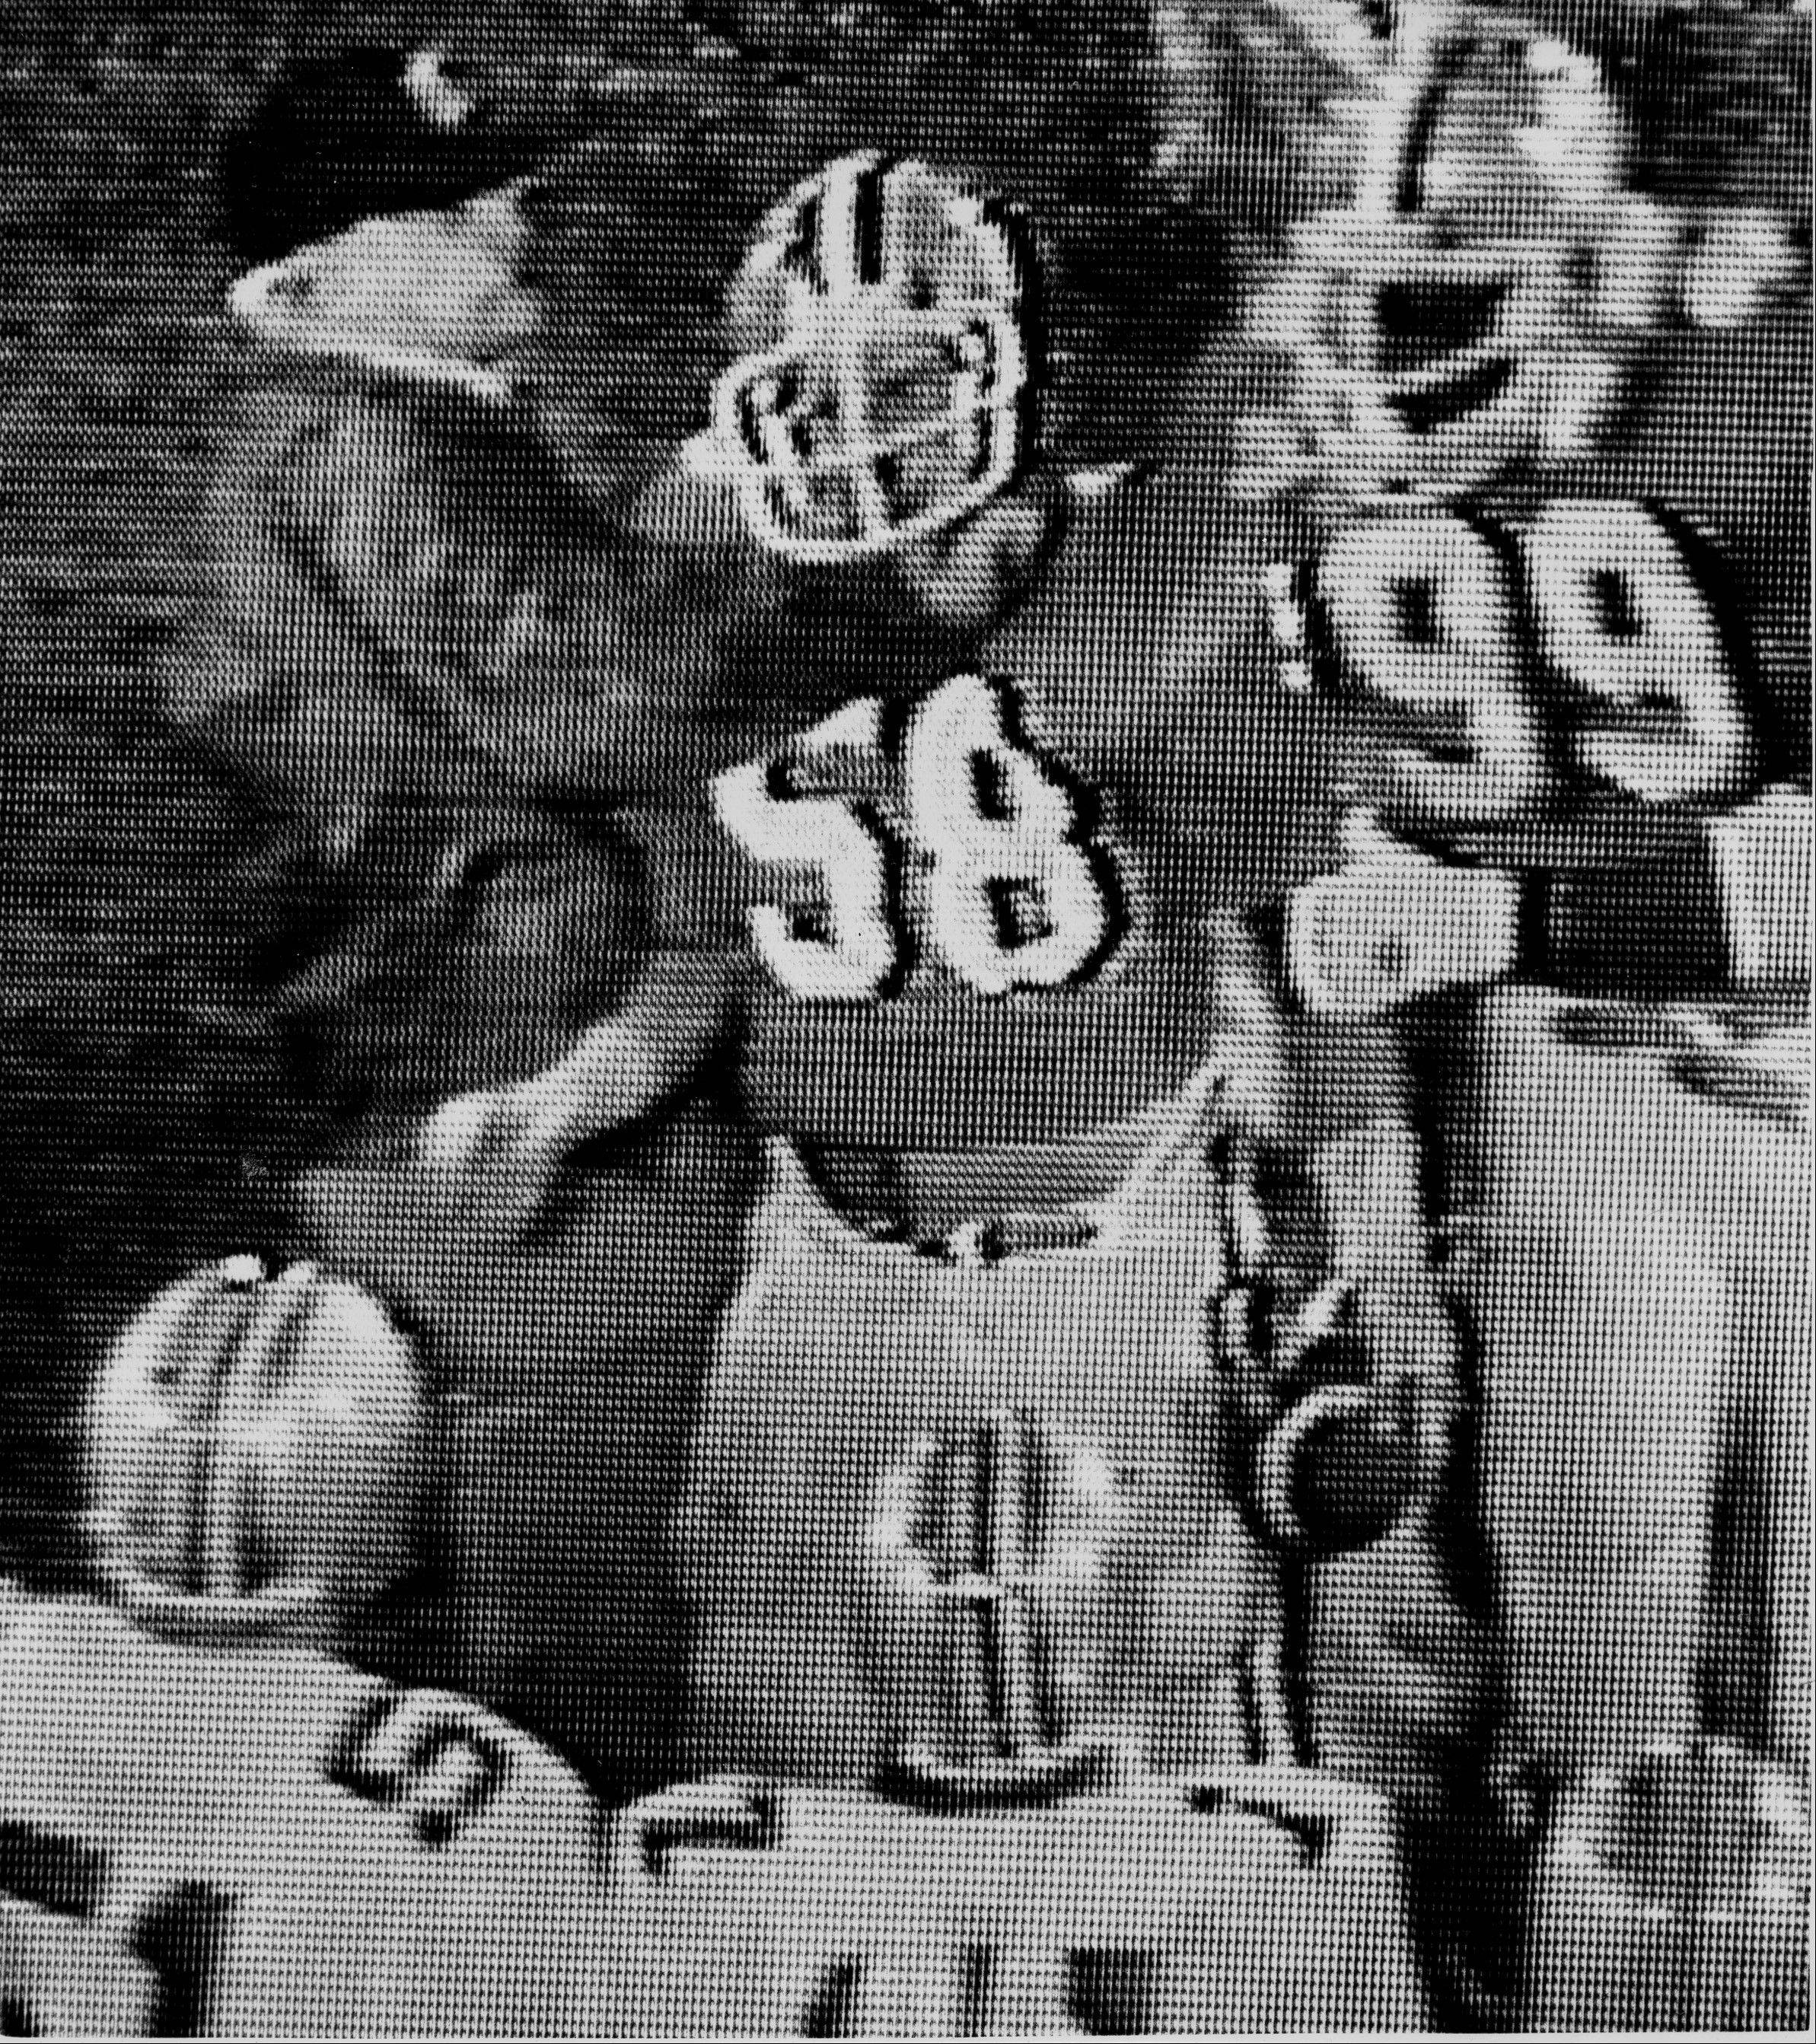 A shot from a monitor at the ABC studios in Washingtom shows Ohio State University coach Woody Hayes, left, after he struck Clemson player Charlie Bauman on the sideline at the 1978 Gator Bowl in Jacksonville, Fl